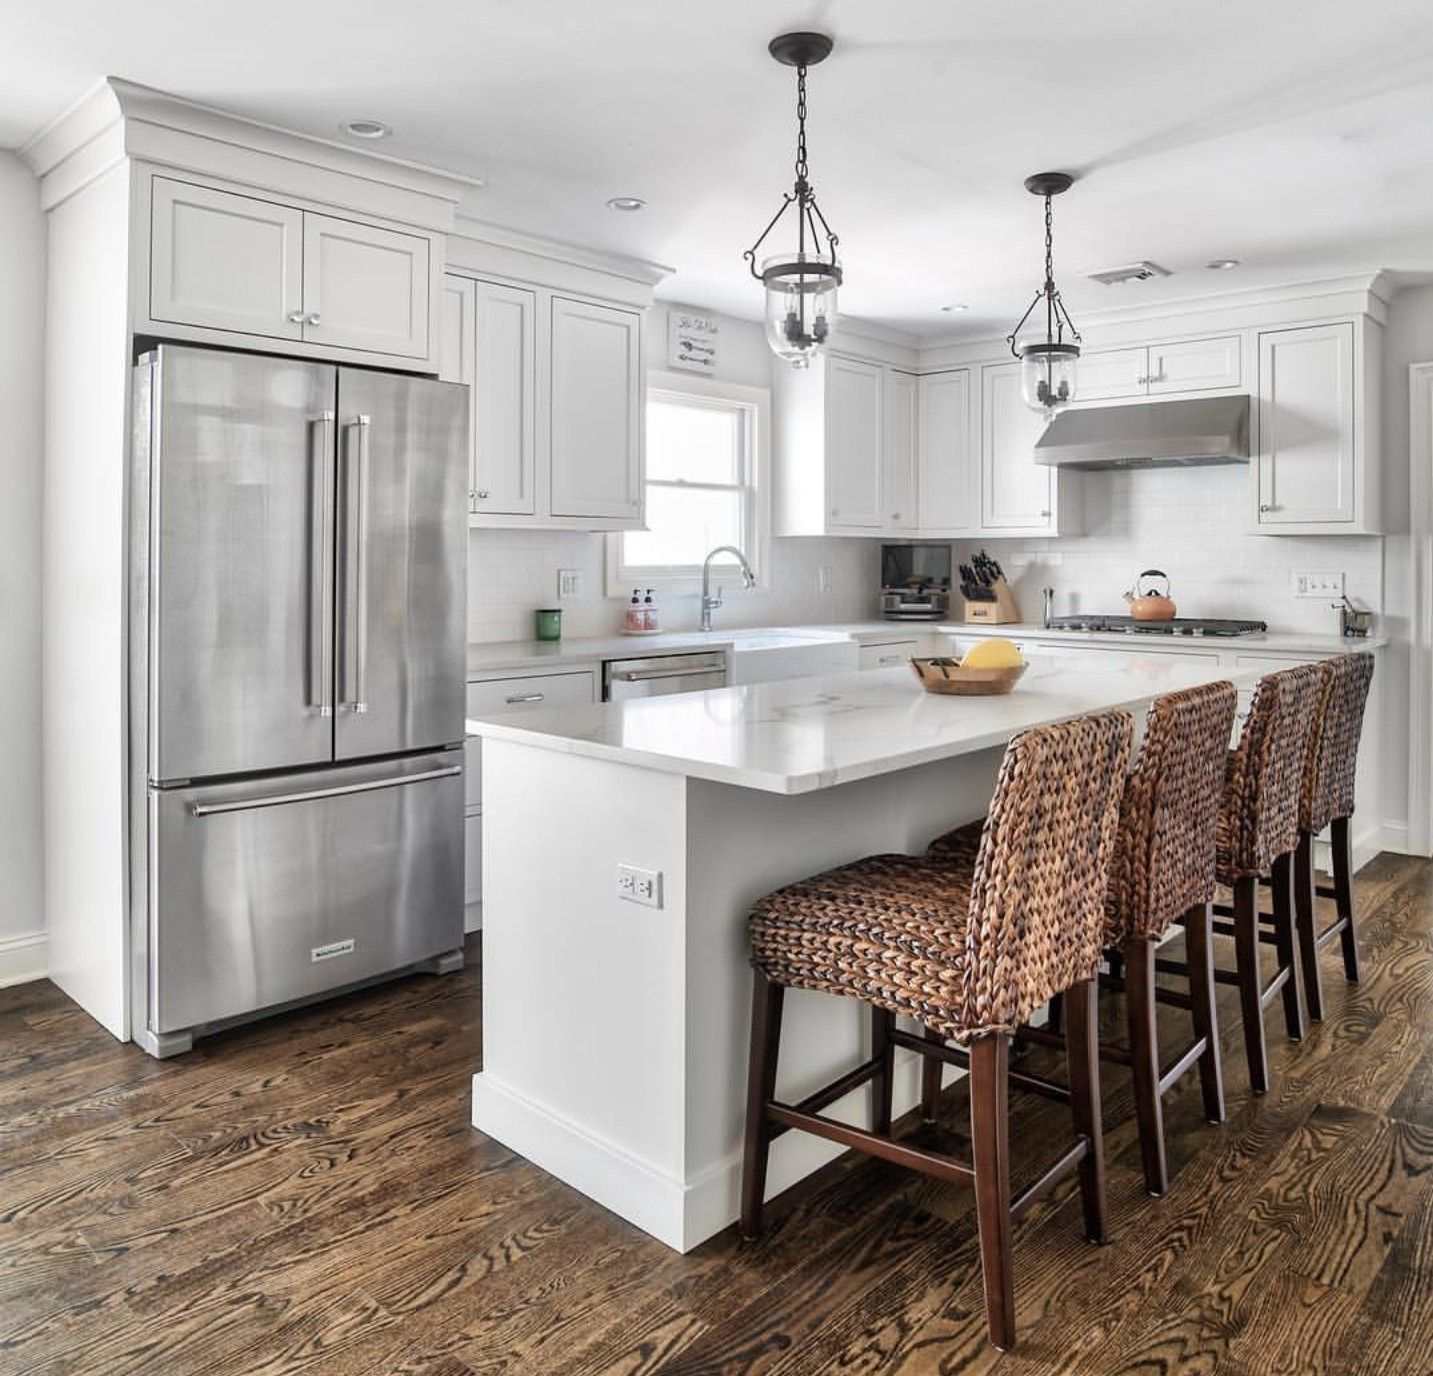 find cool l shaped kitchen design for your home now with images kitchen designs layout on l kitchen remodel id=58163